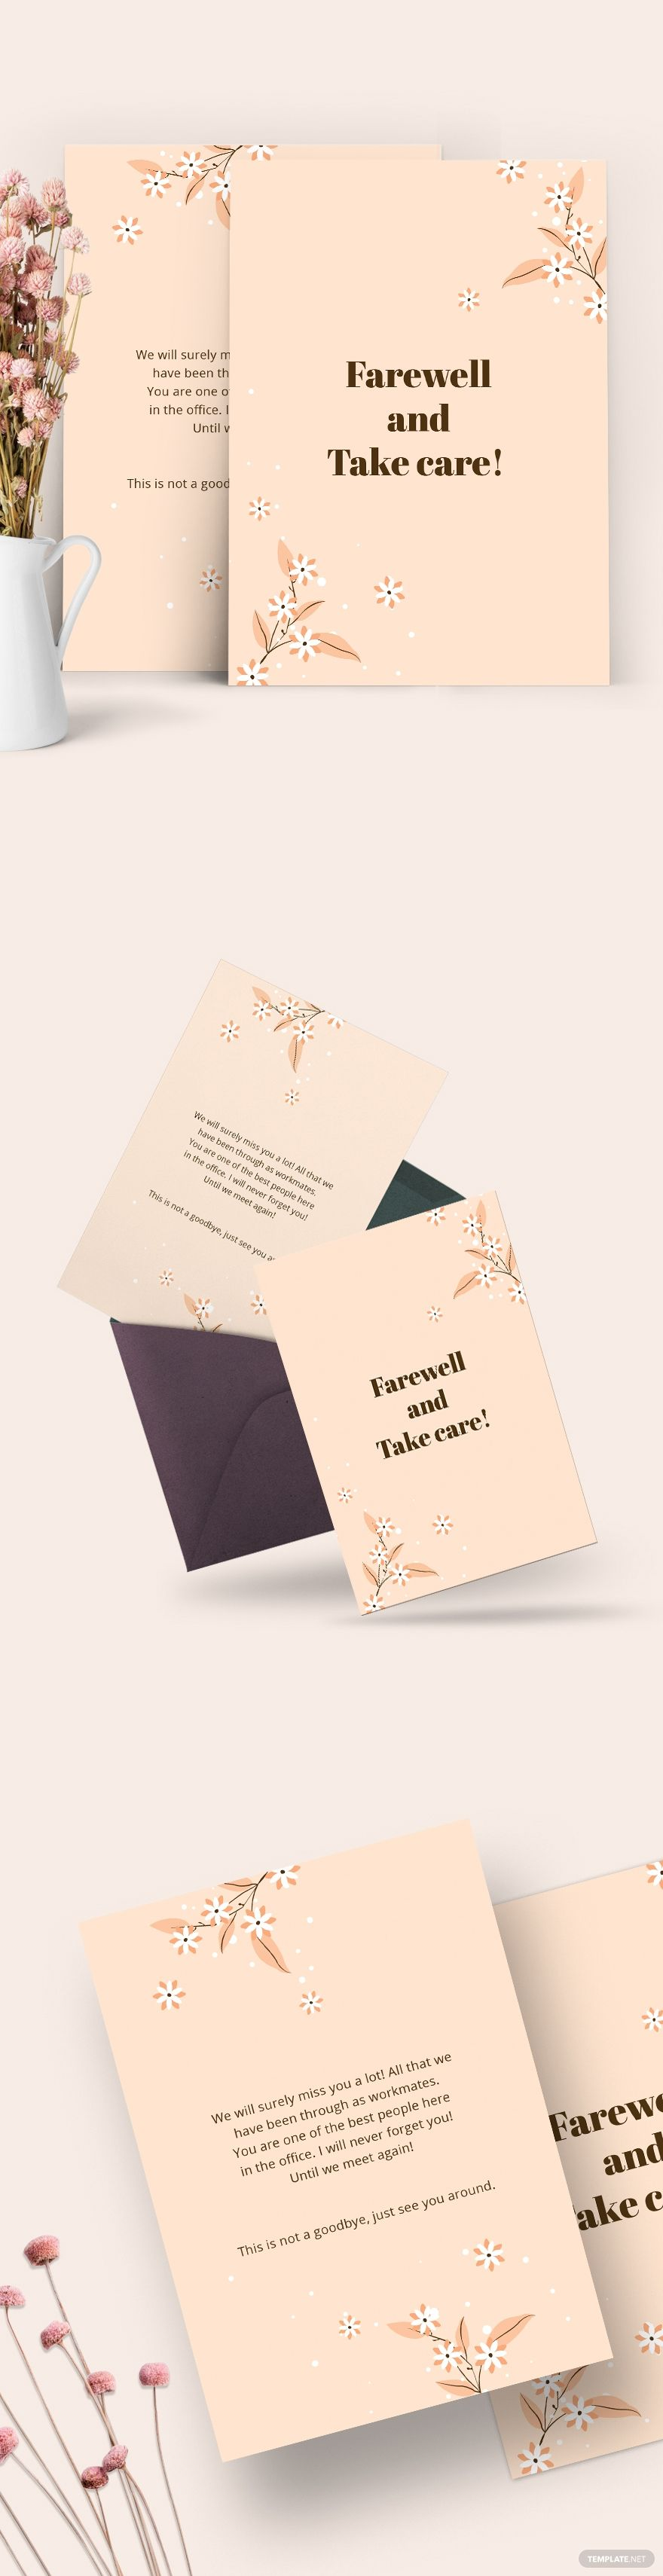 Simple Office Farewell Card Template Free Jpg Illustrator Word Apple Pages Psd Publisher Template Net Card Template Card Templates Free Farewell Cards